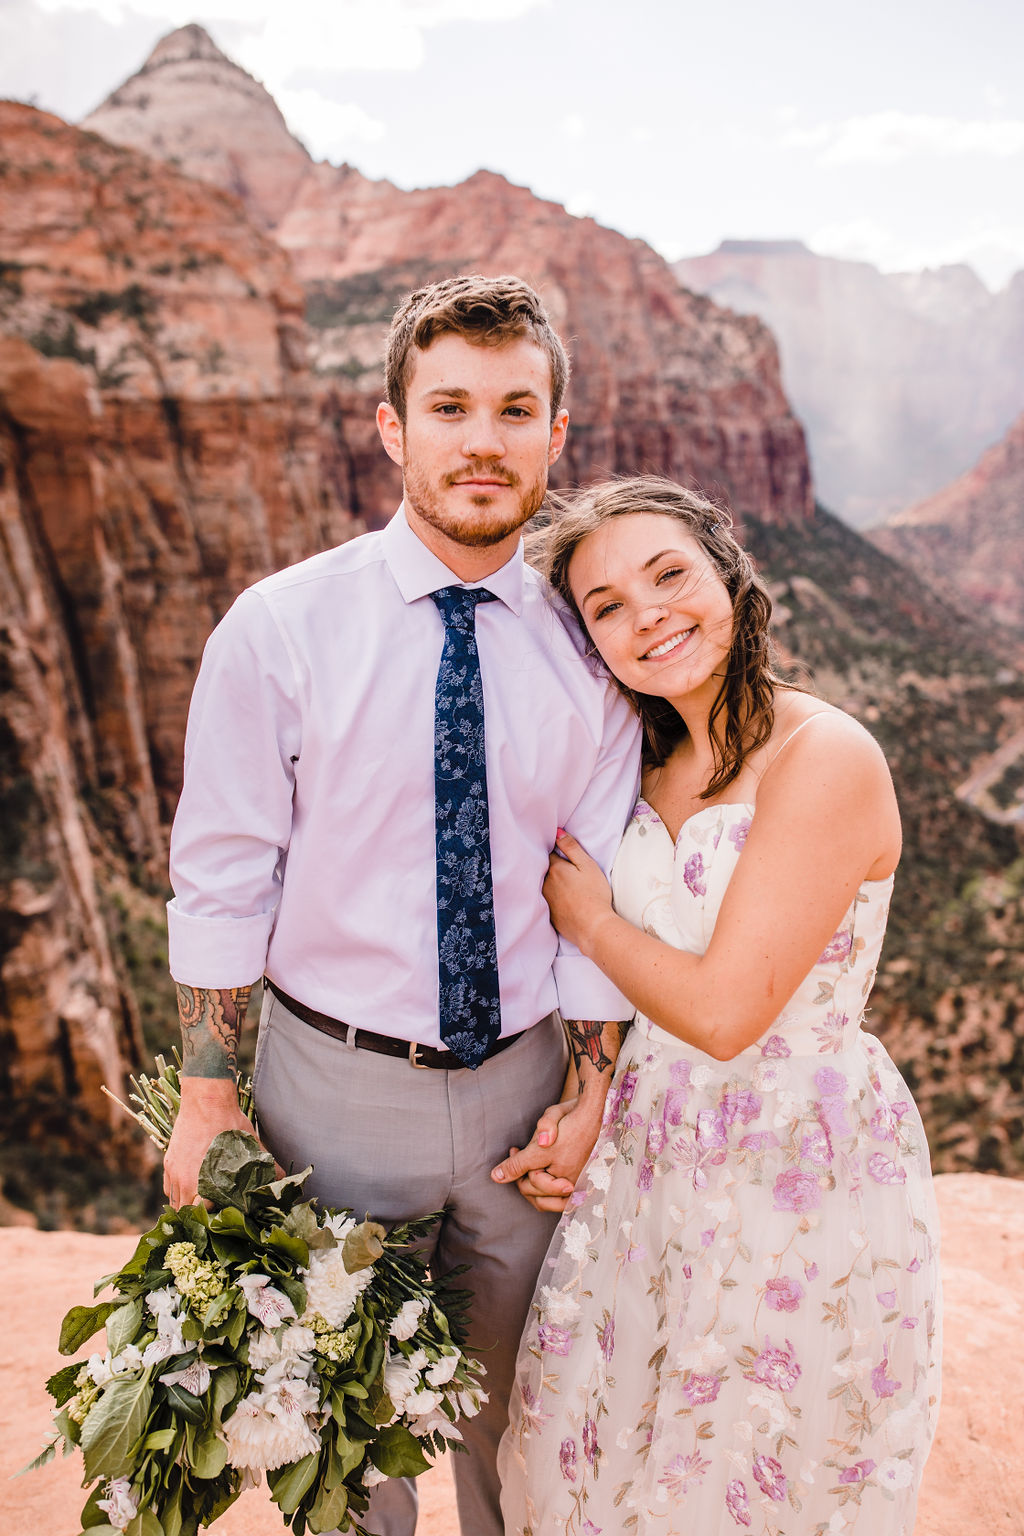 best grand canyon formal photographer pink floral wedding dress red rocks hugging cliff smiling